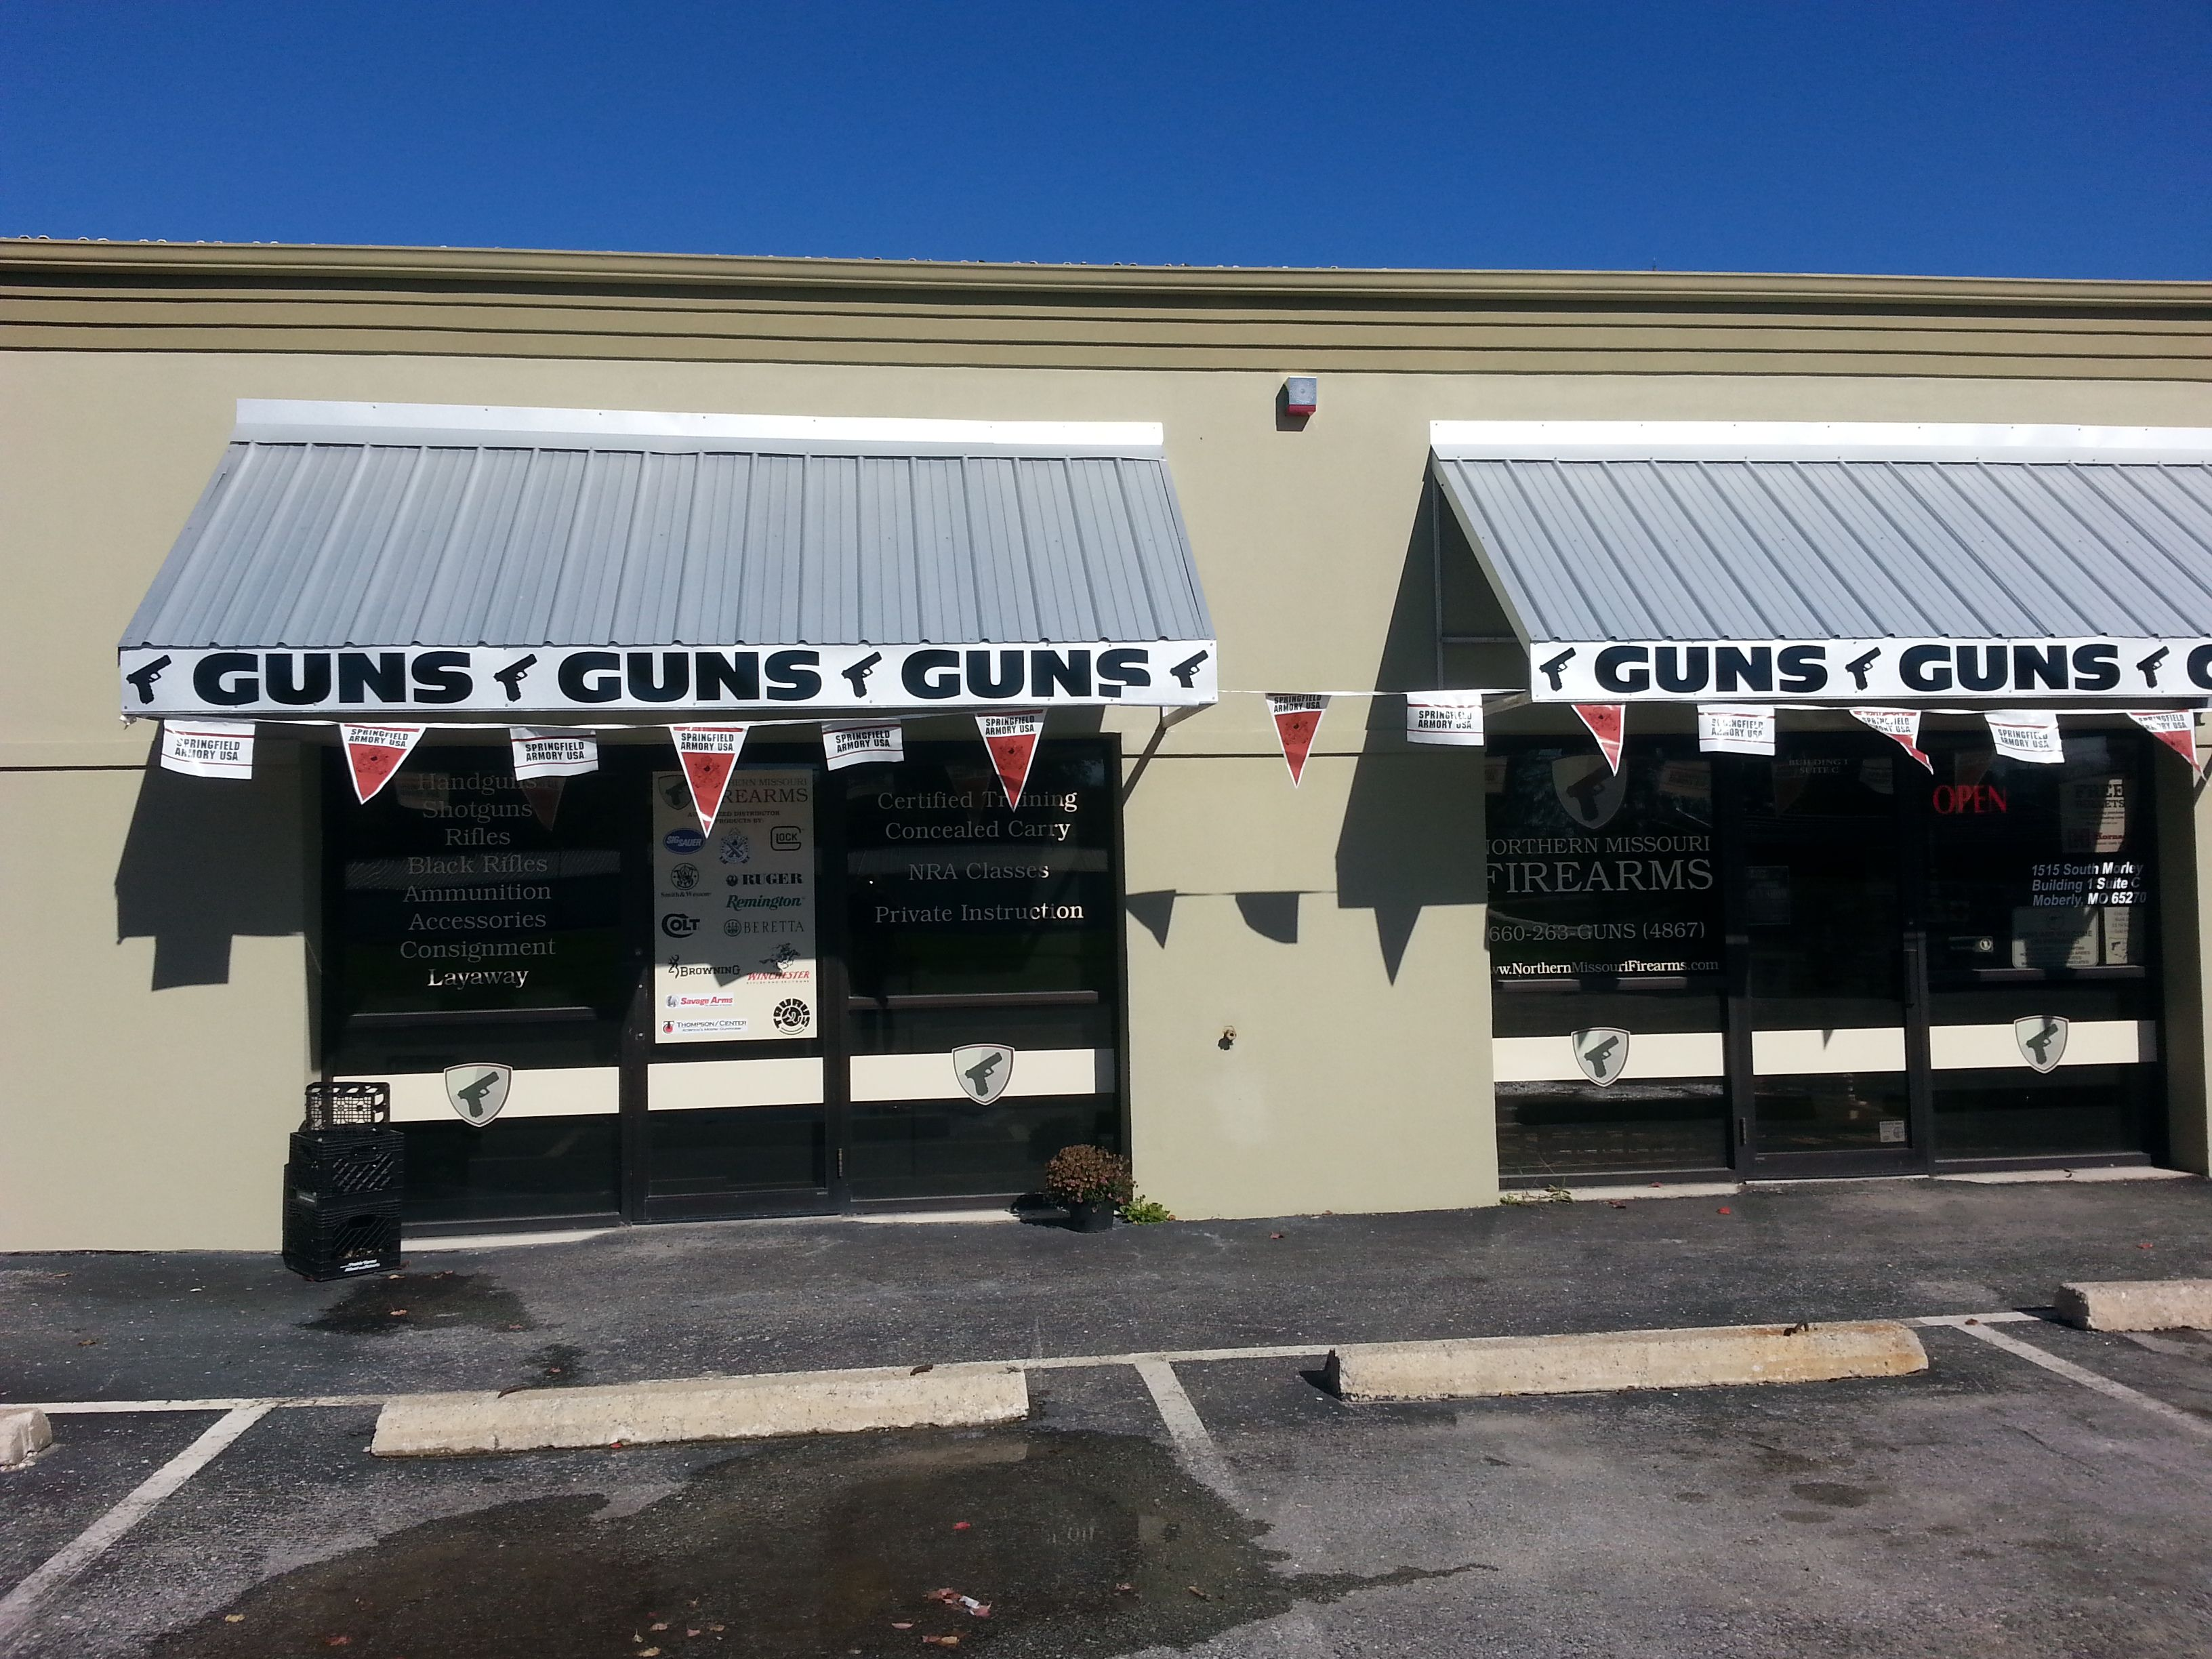 New awnings! Check us out on Facebook. NorthernMissouriFirearms for all our inventory!